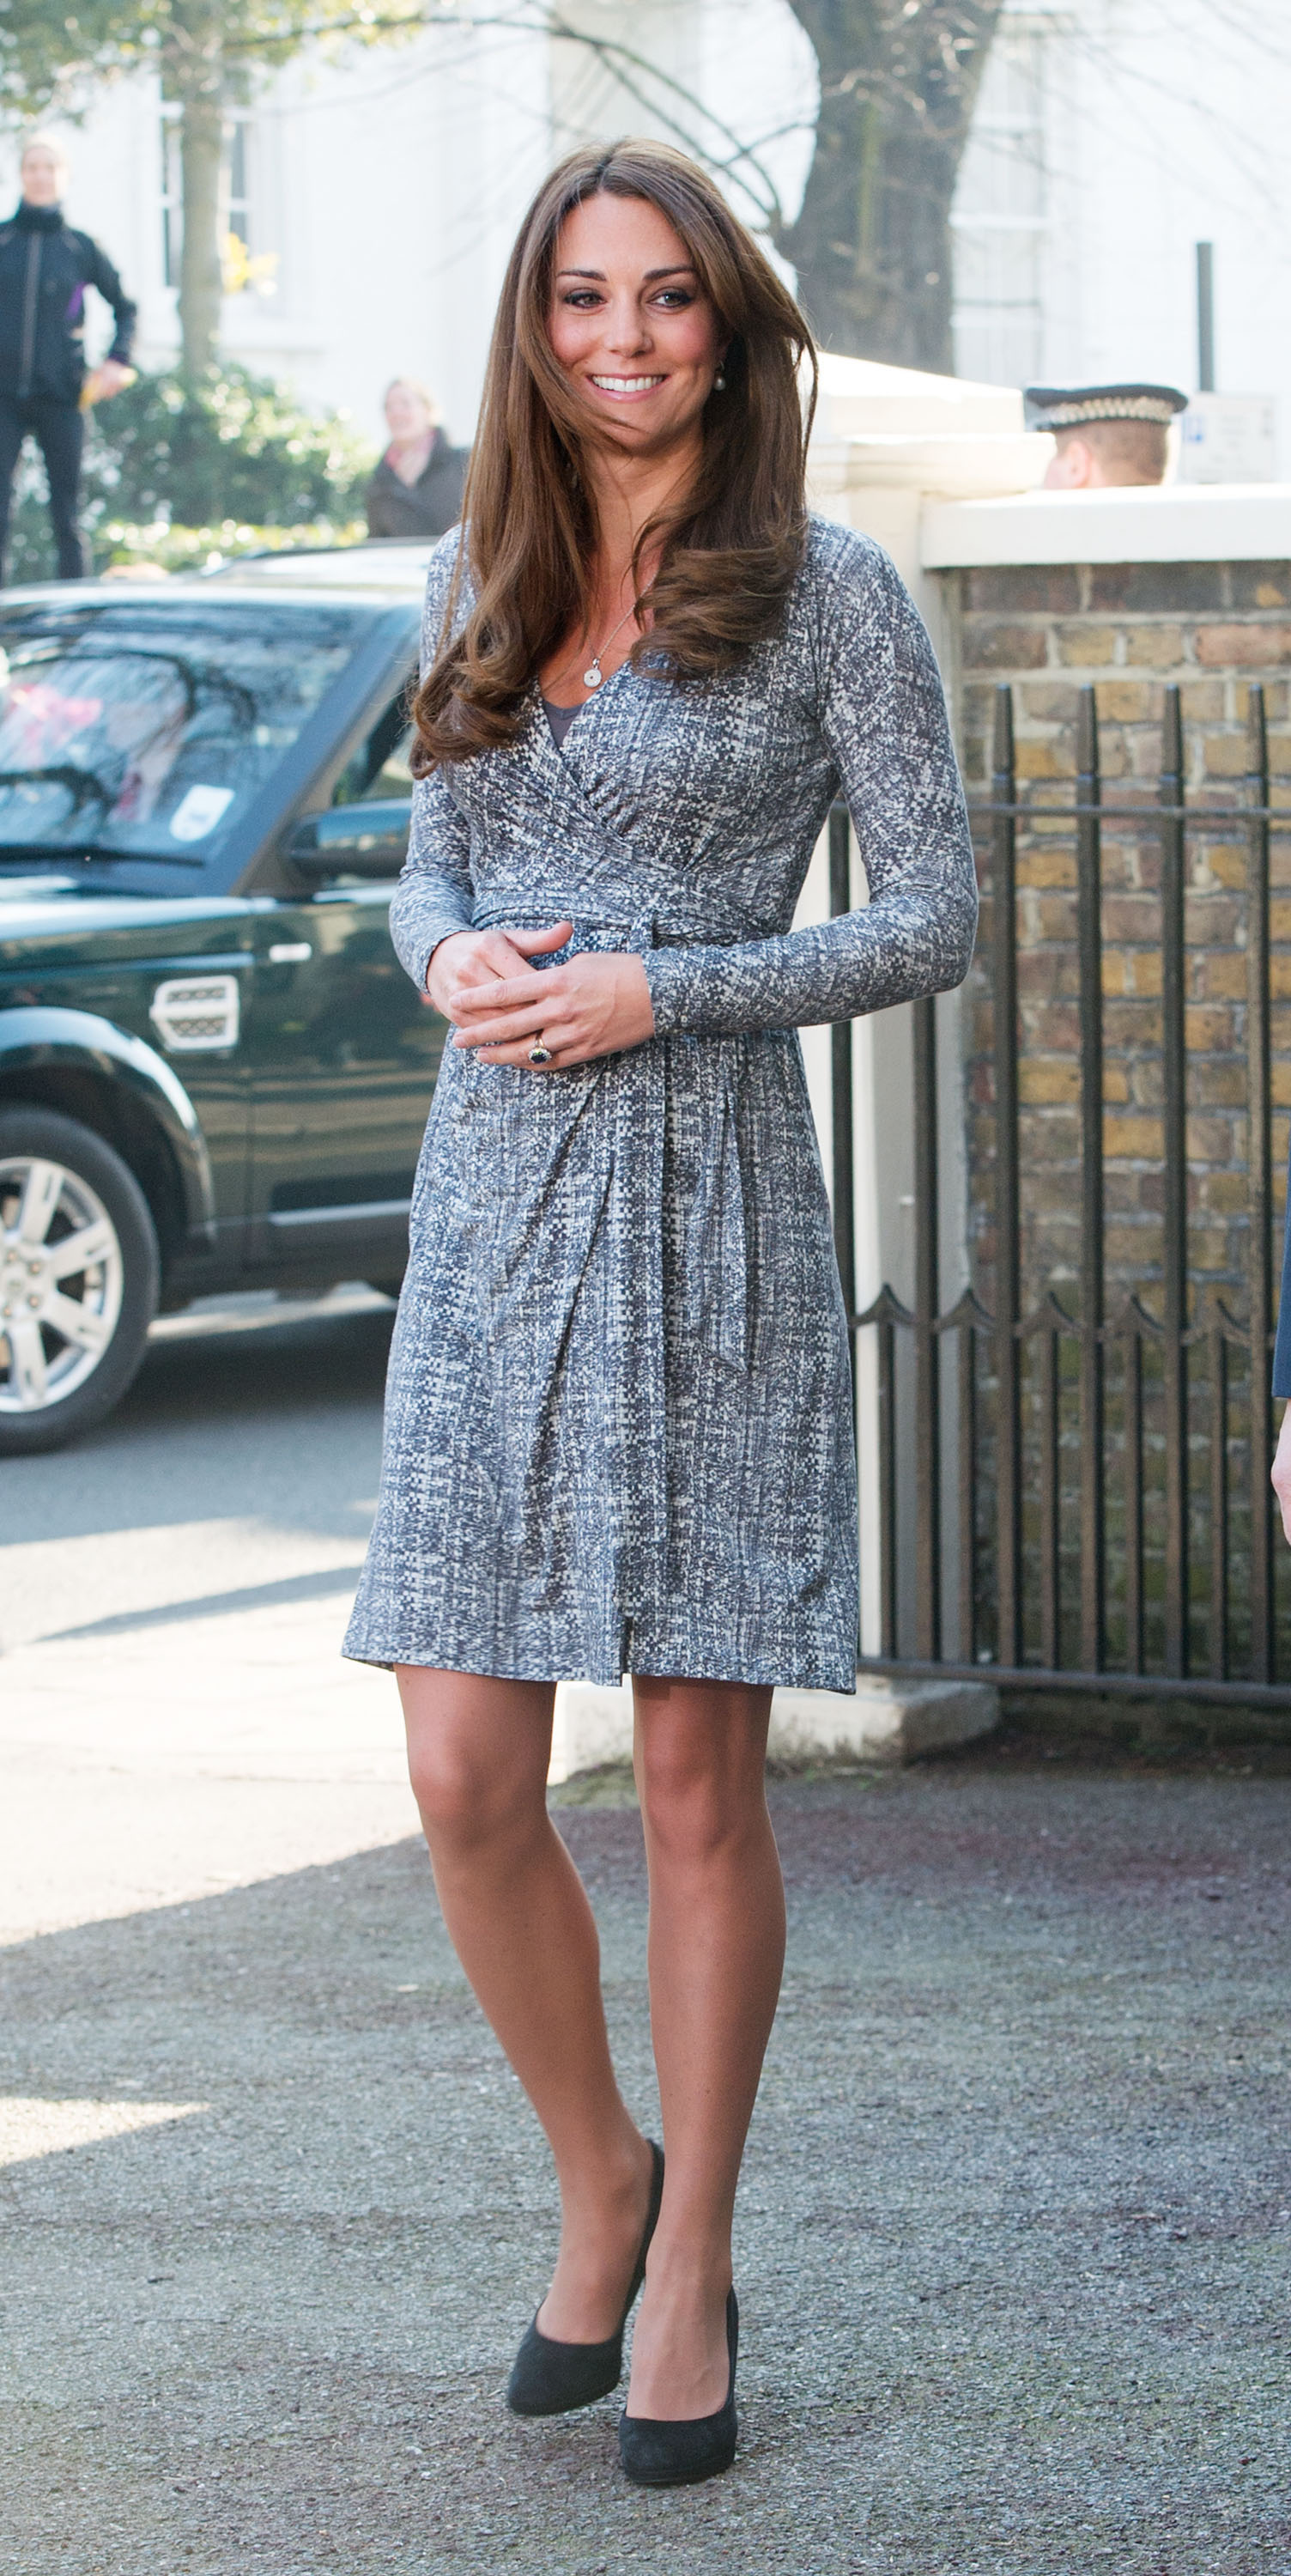 LONDON, UNITED KINGDOM - FEBRUARY 19: Catherine, Duchess of Cambridge visits Hope House on February 19, 2013 in London, England. (Photo by Samir Hussein/WireImage)